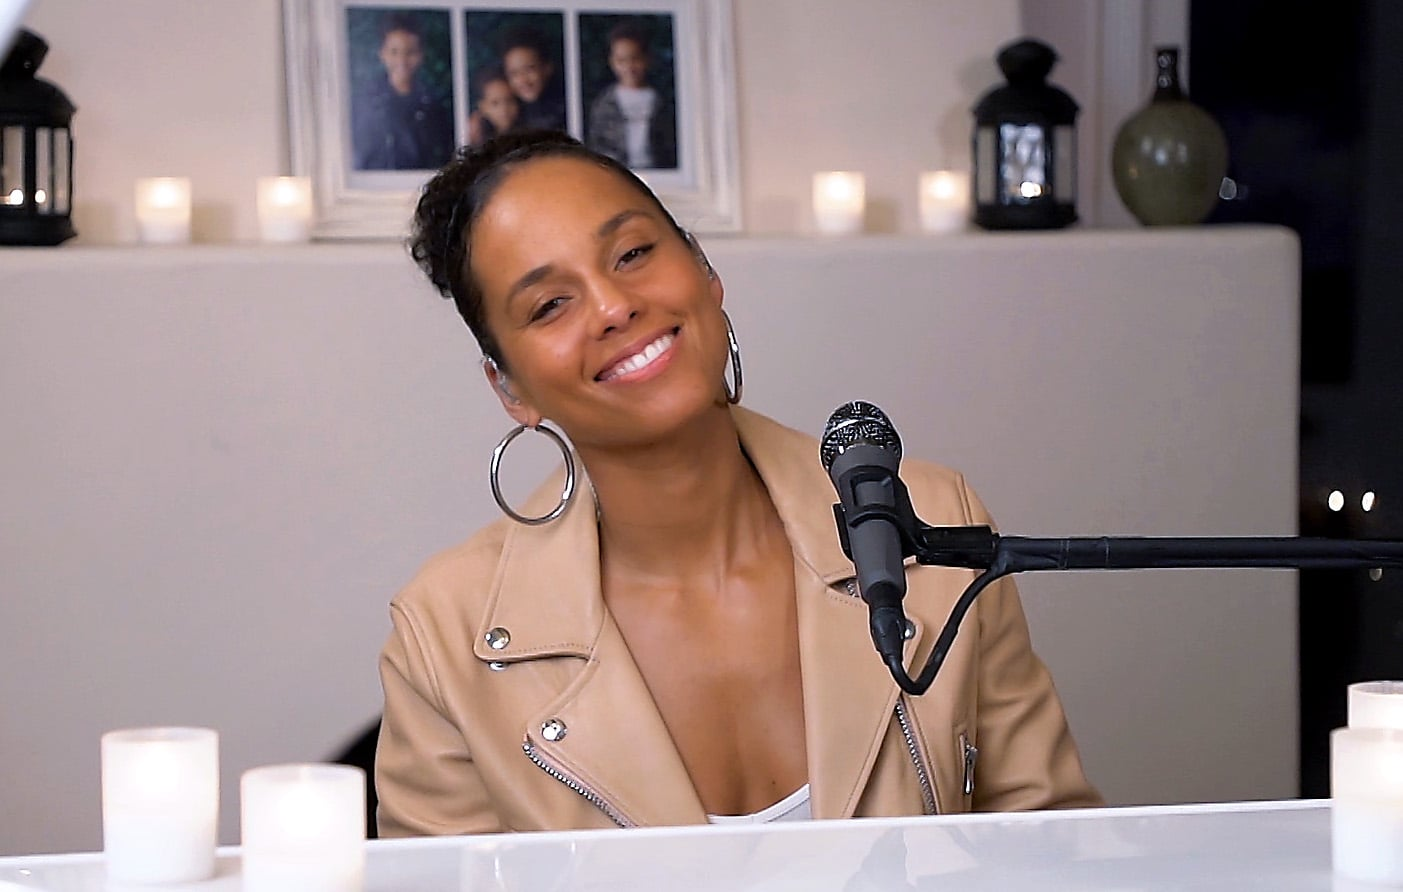 UNSPECIFIED,  - APRIL 22: In this screengrab, Alicia Keys performs during